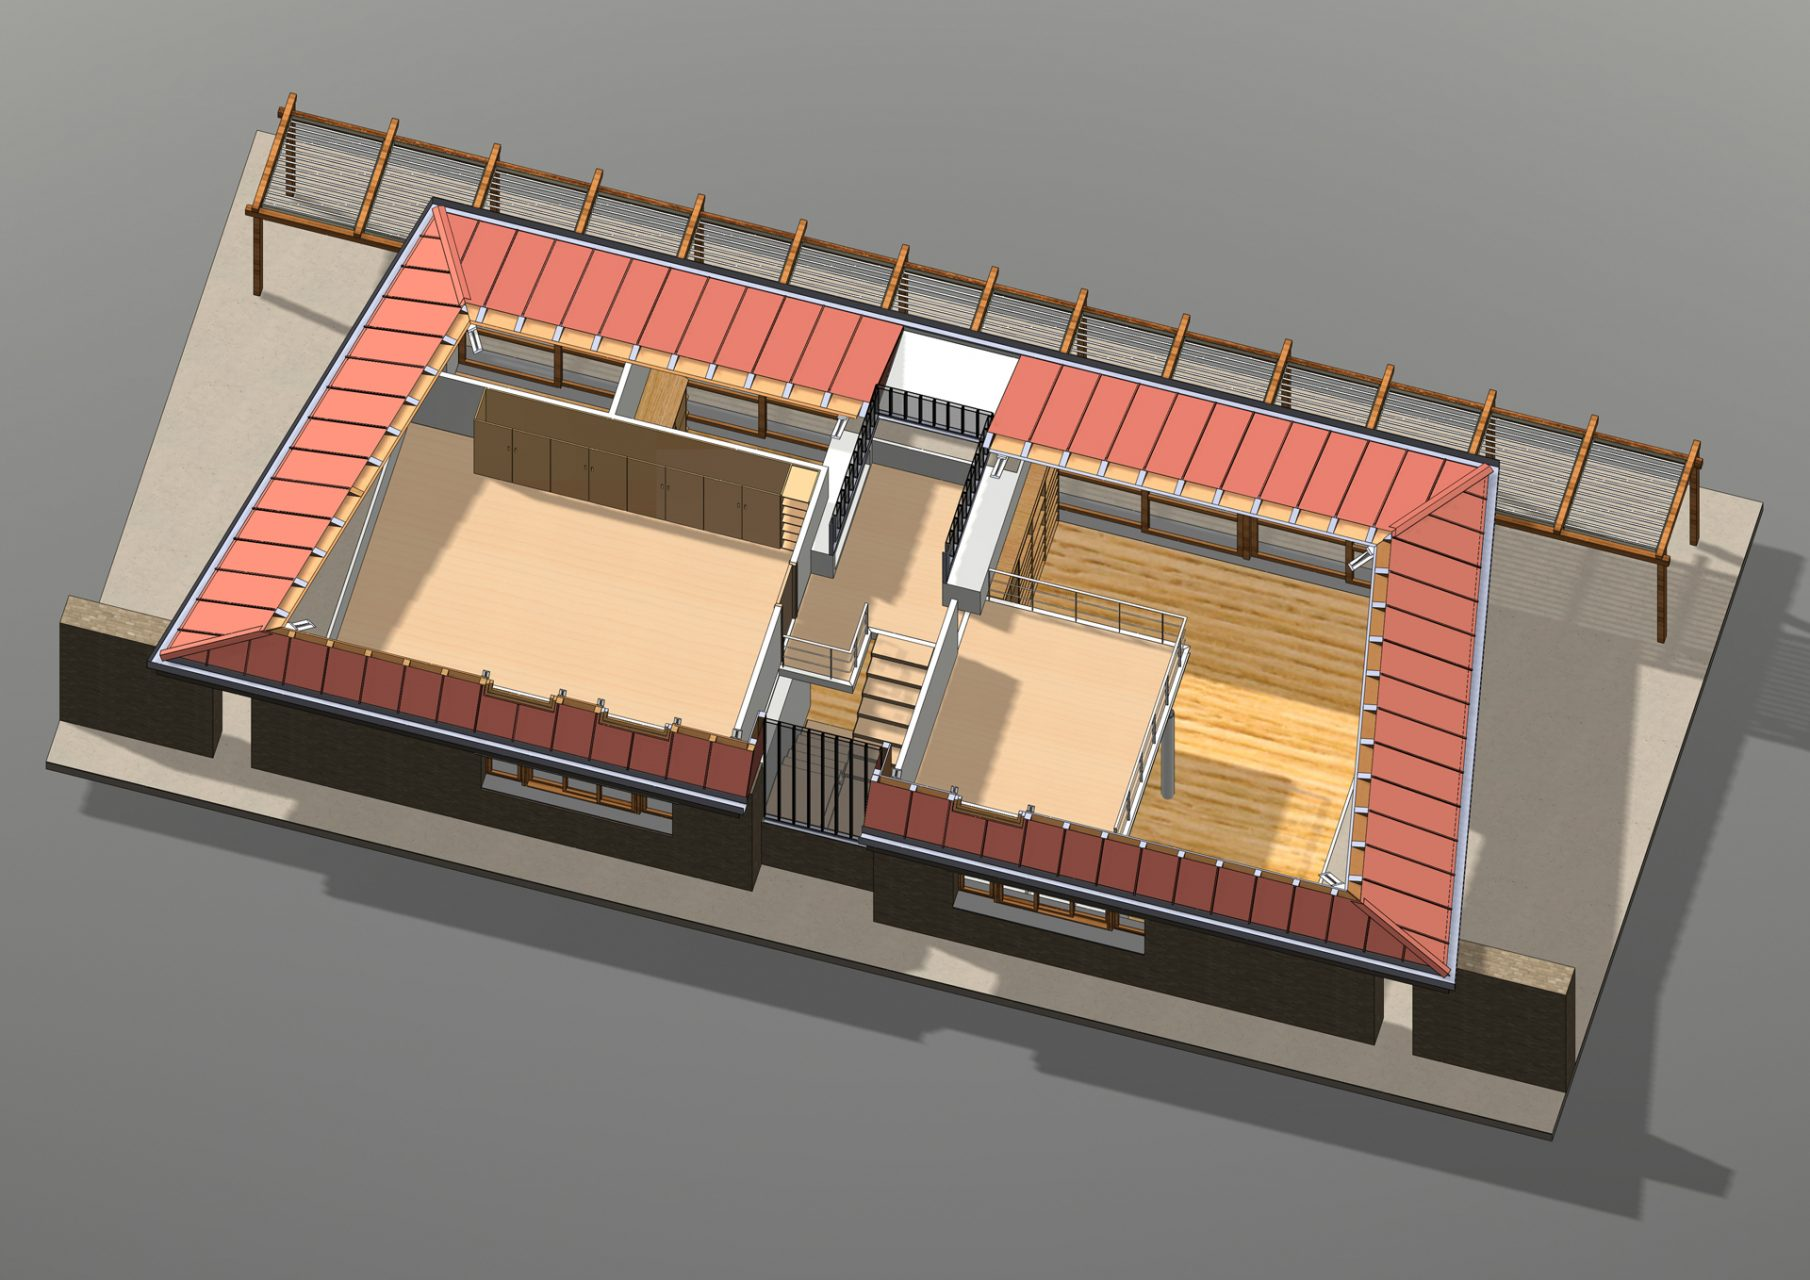 KL HOUSE 12 - axonometric plan - first floor - sectioned model F